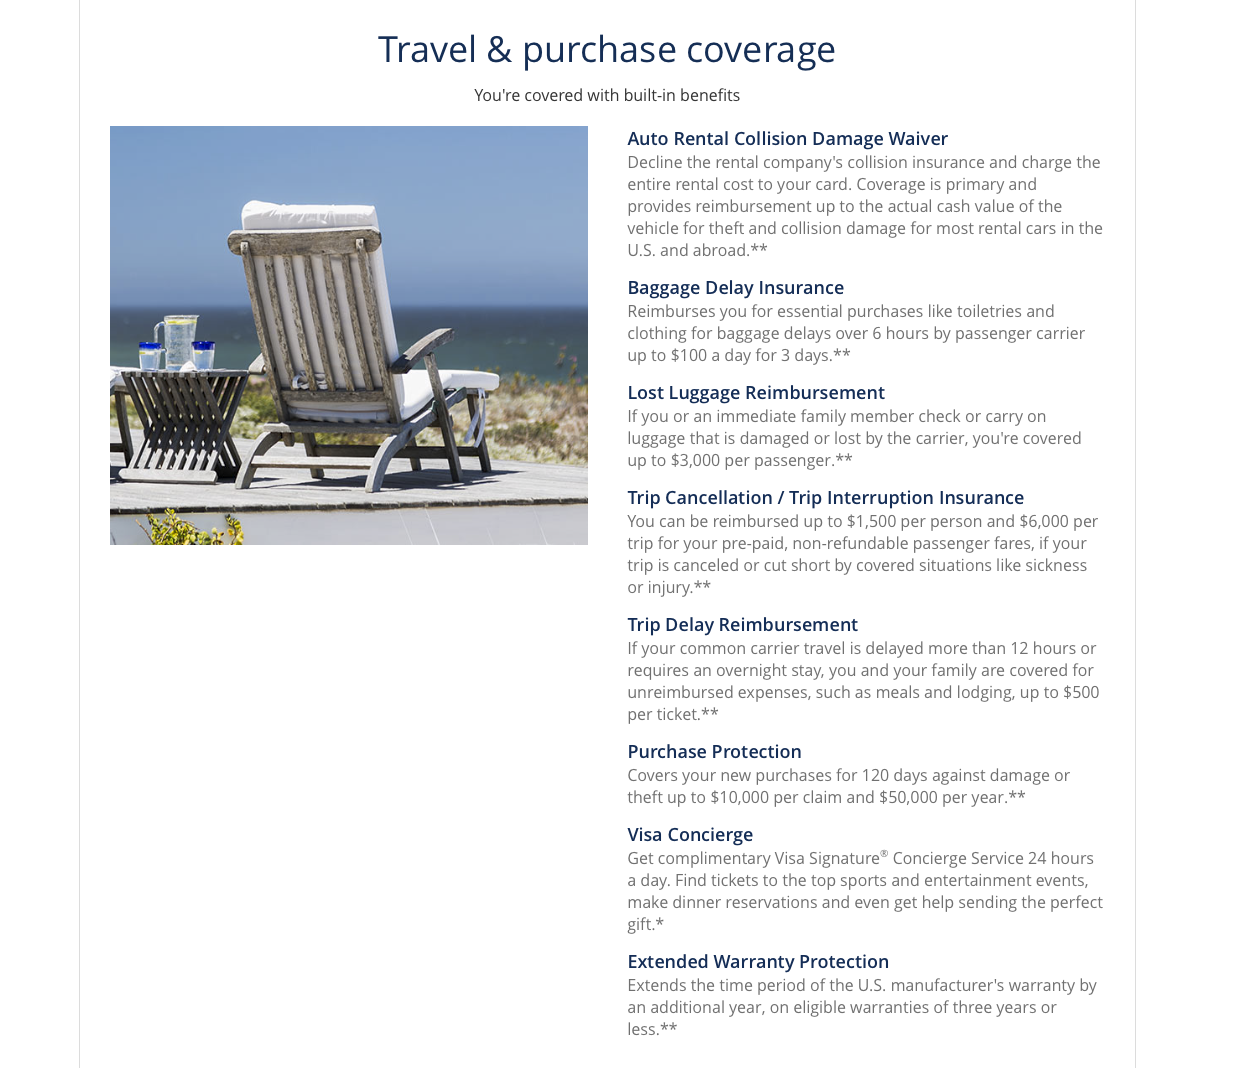 United Explorer Mileage Plan credit card benefits